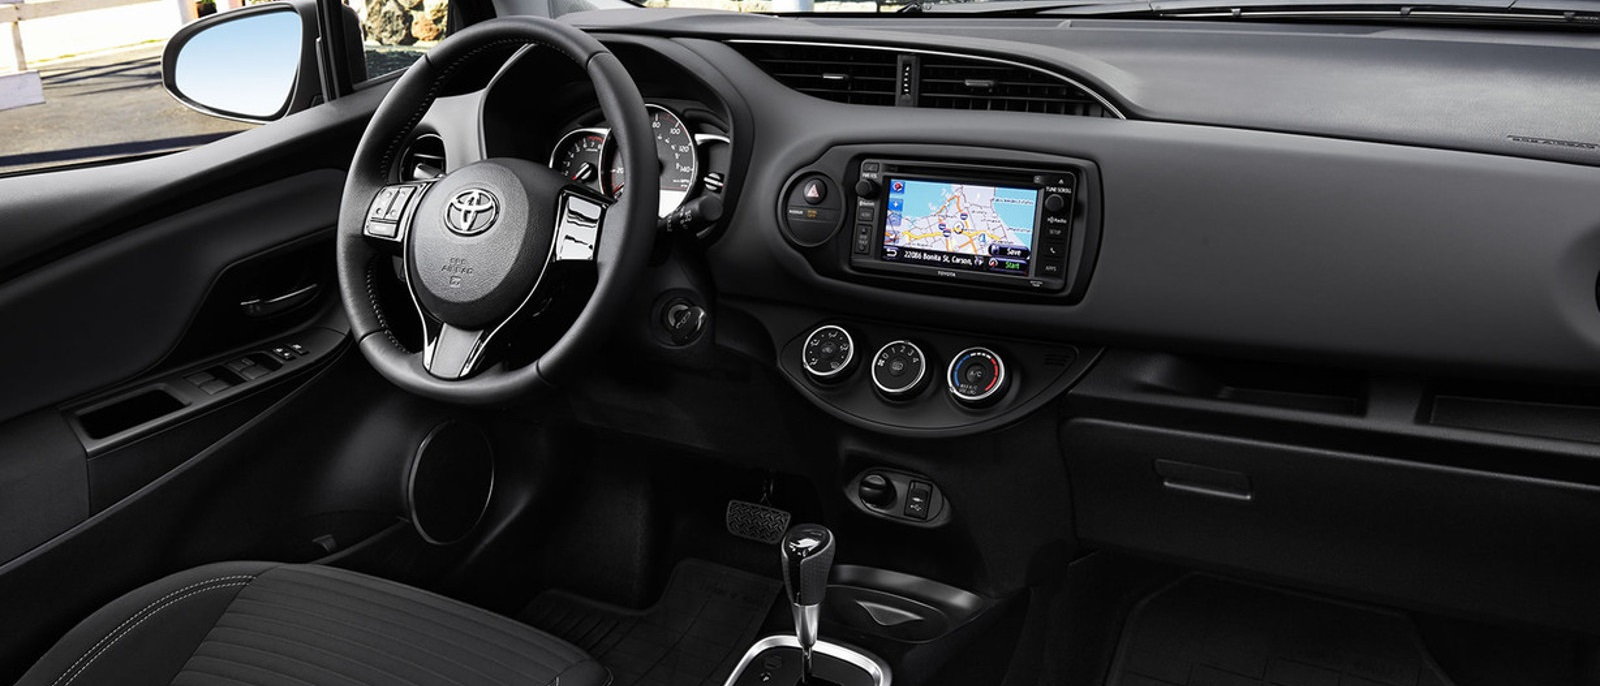 toyota le specifications en hatchback makes car door photos all guide the yaris